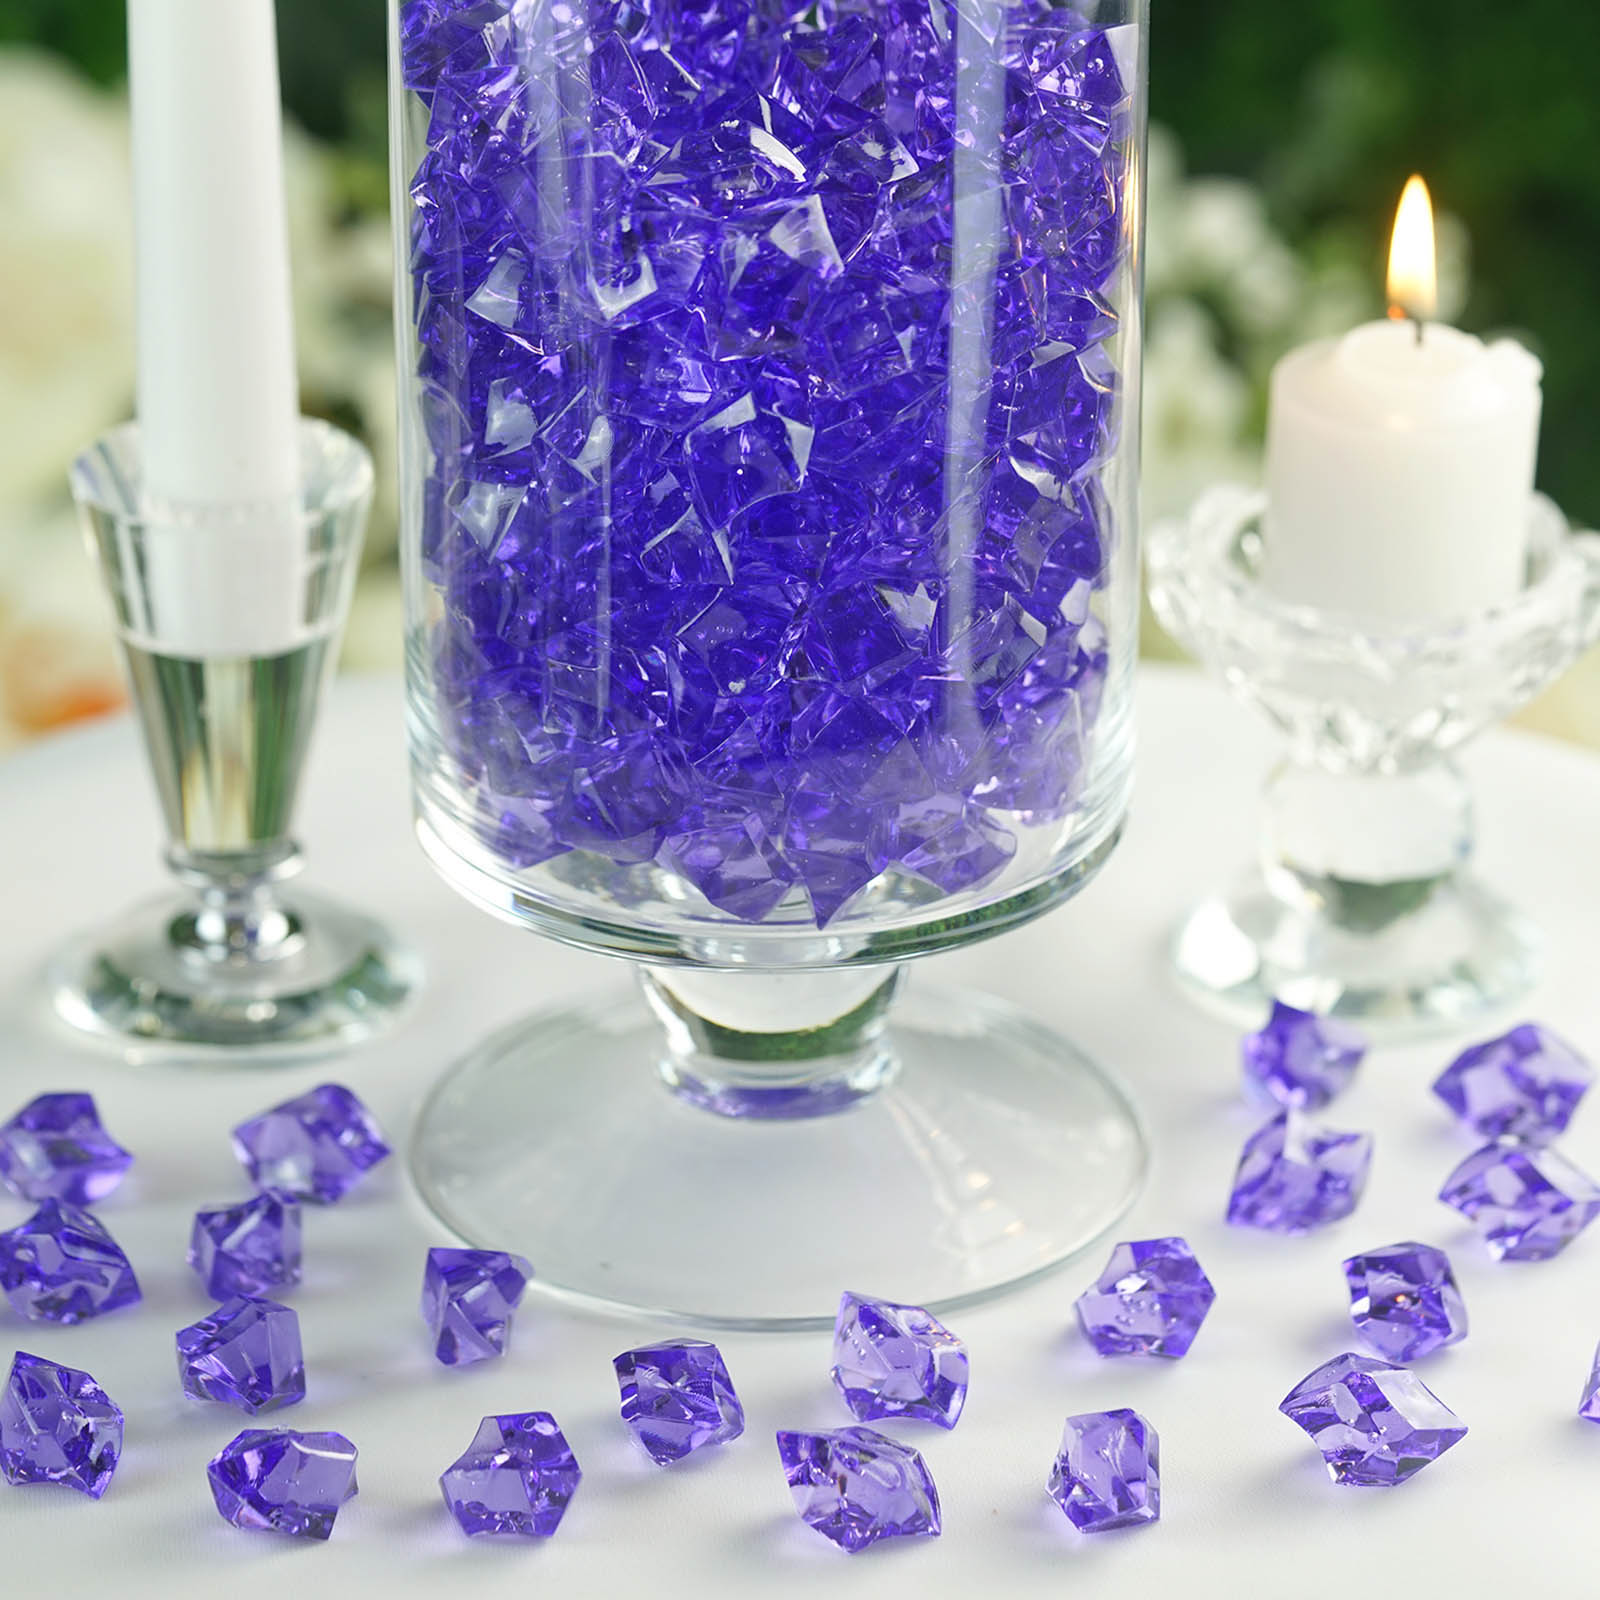 300-Acrylic-Ice-CRYSTAL-LIKE-Pieces-Wedding-Centerpieces-Decorations-Supplies thumbnail 51